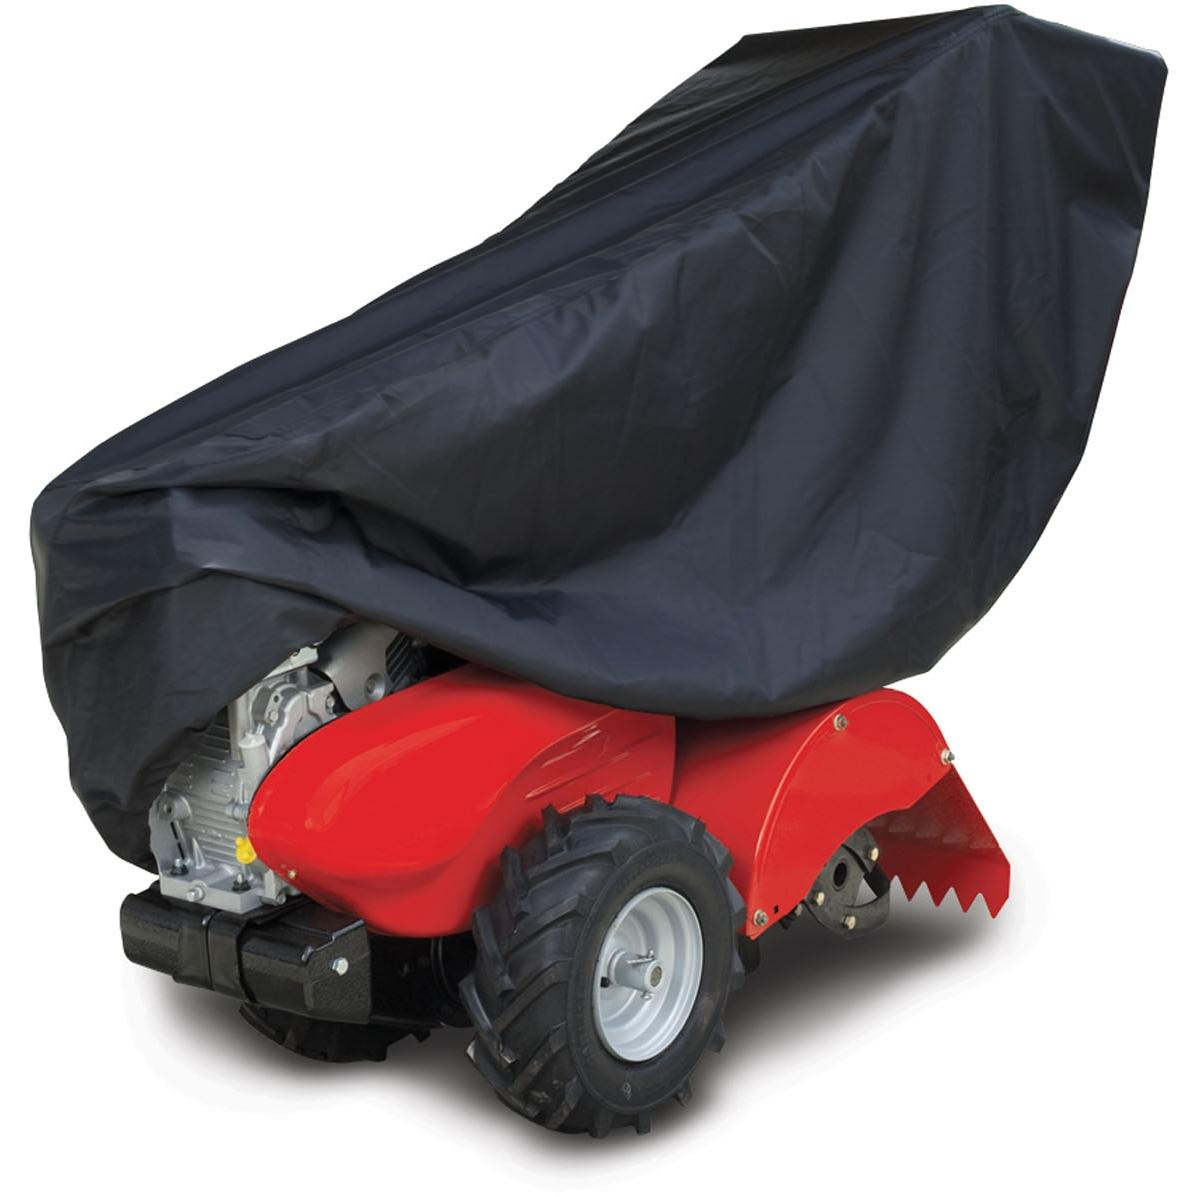 Classic Accessories Rototiller Cover - Black